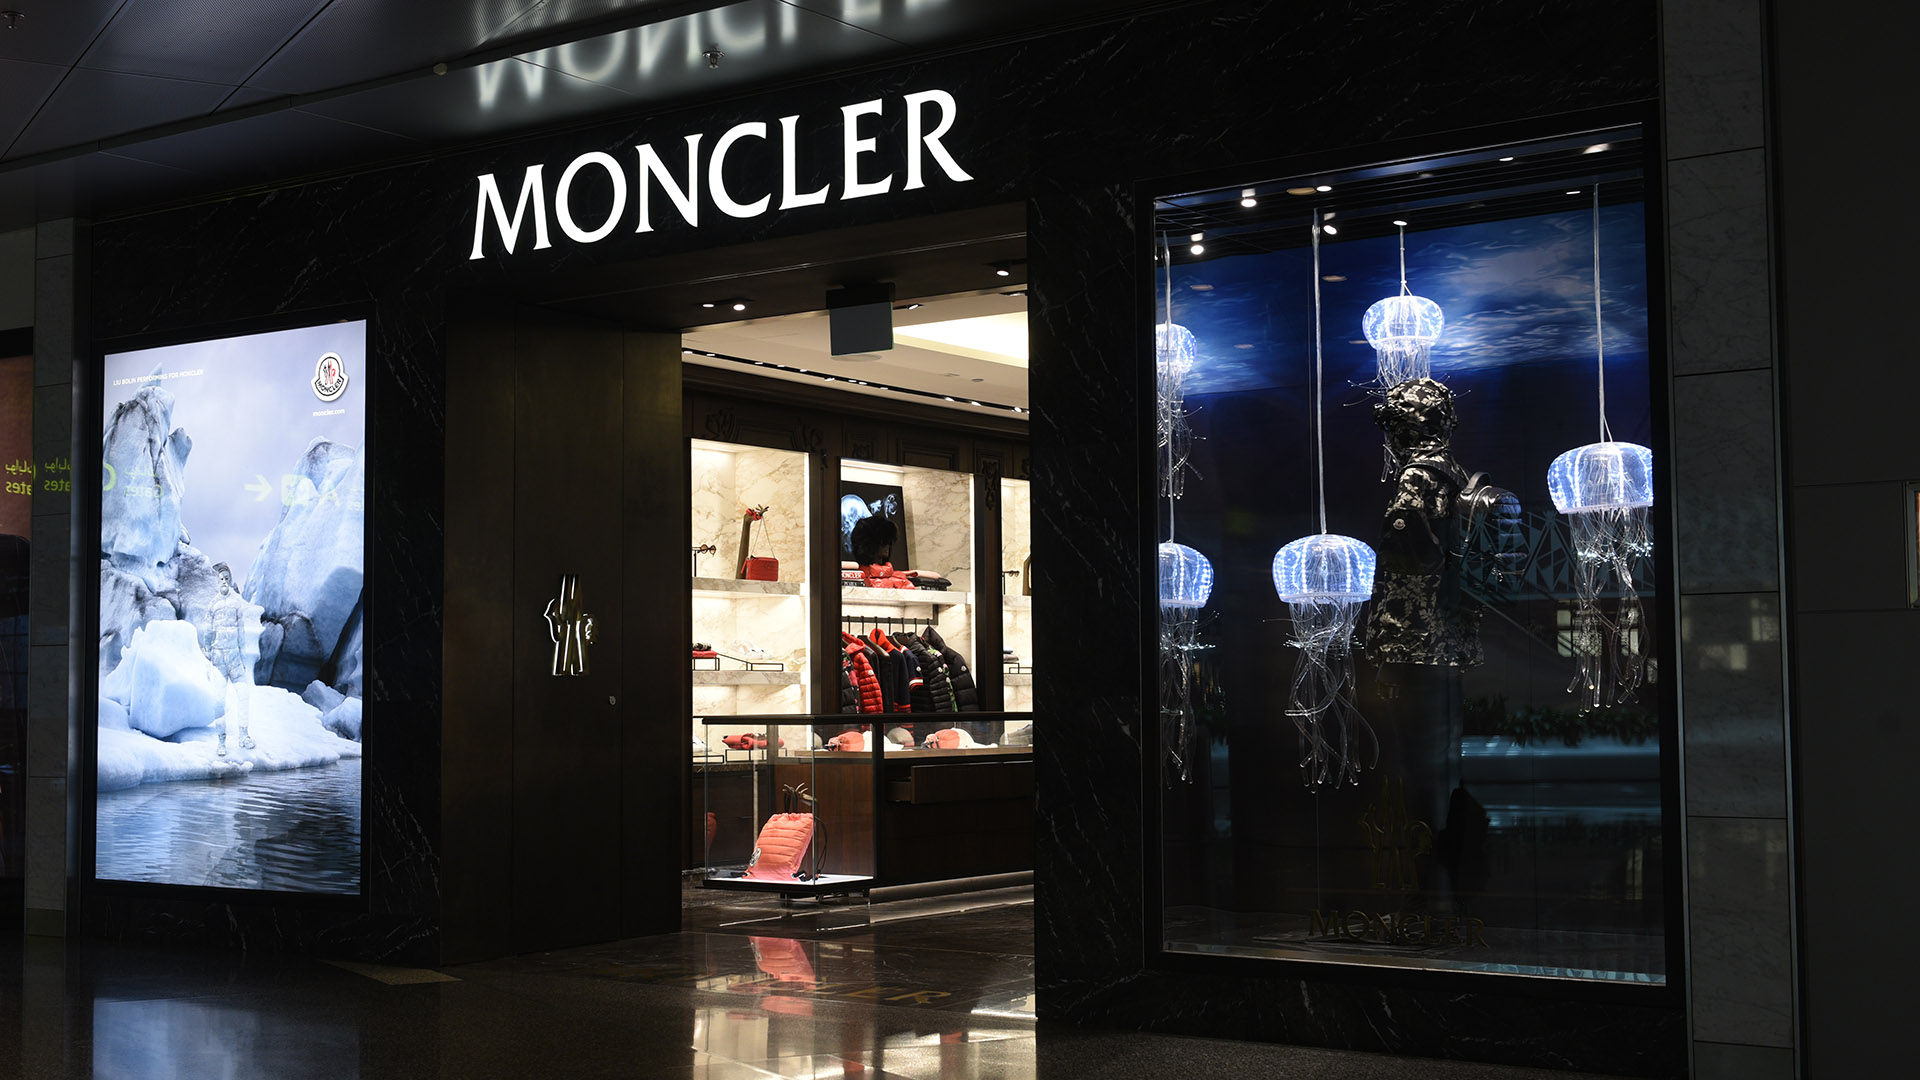 Moncler Jelly Fish Window created by ME Visual, Qatar. This display uses Fiber-optic lights.